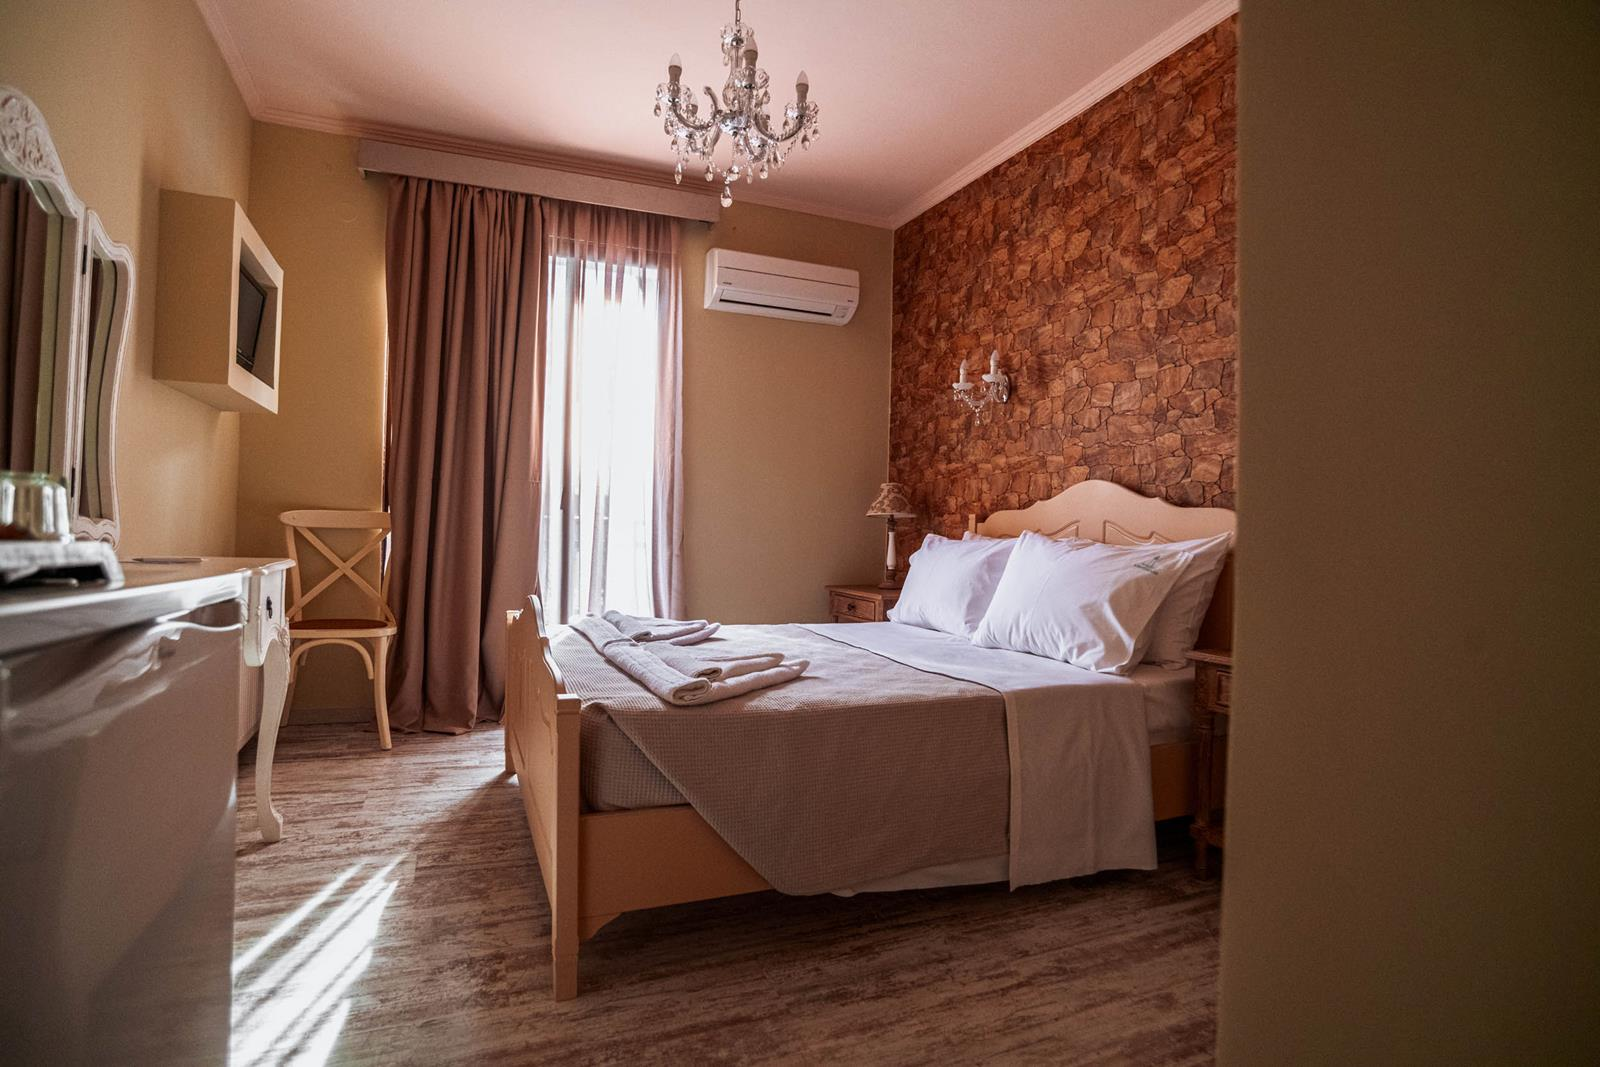 alexandroupolis hotels - Light House Hotel